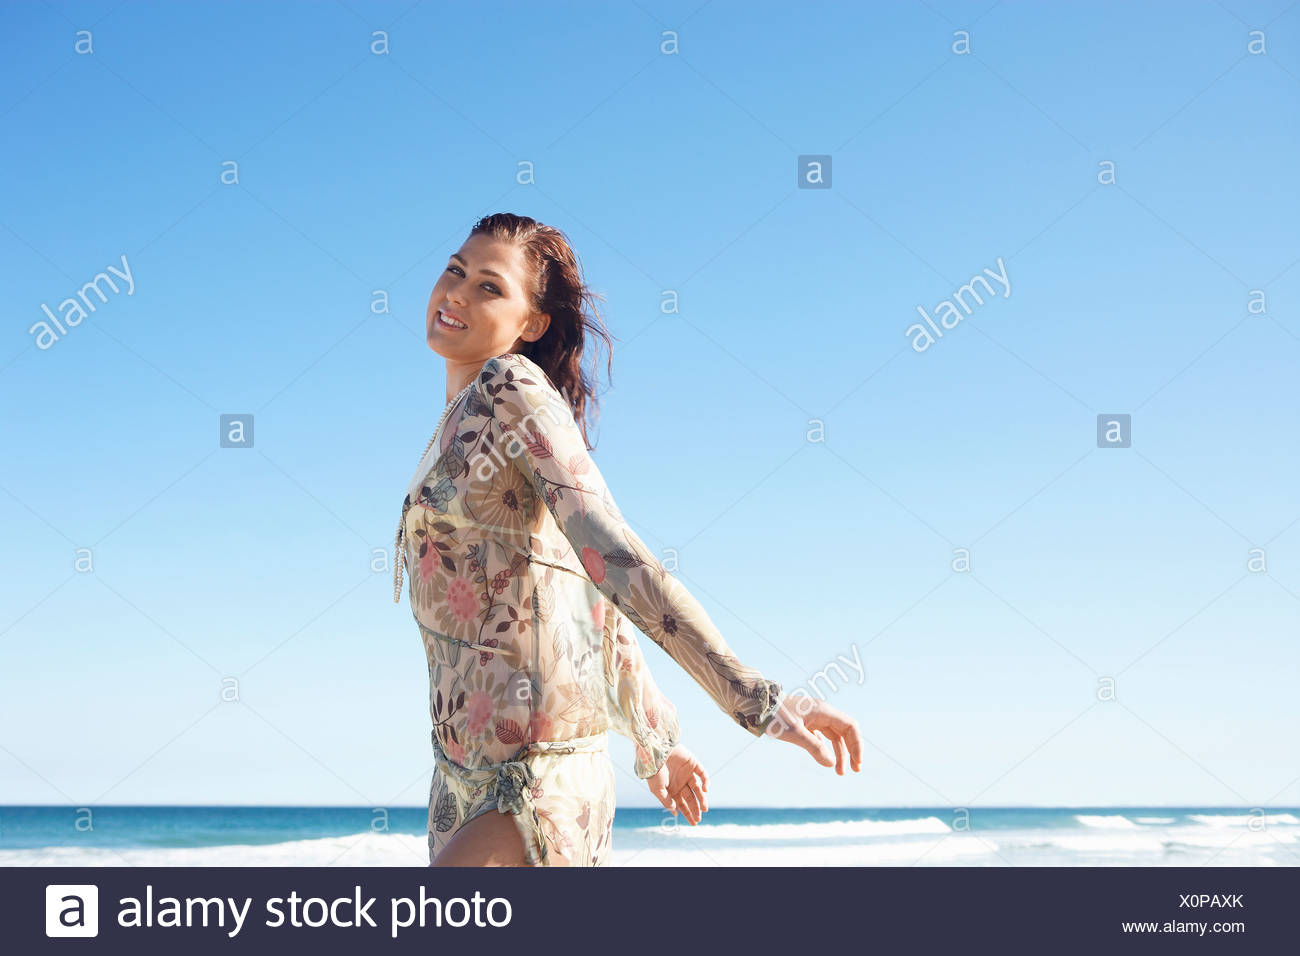 Young woman posing by sea, half-length - Stock Image